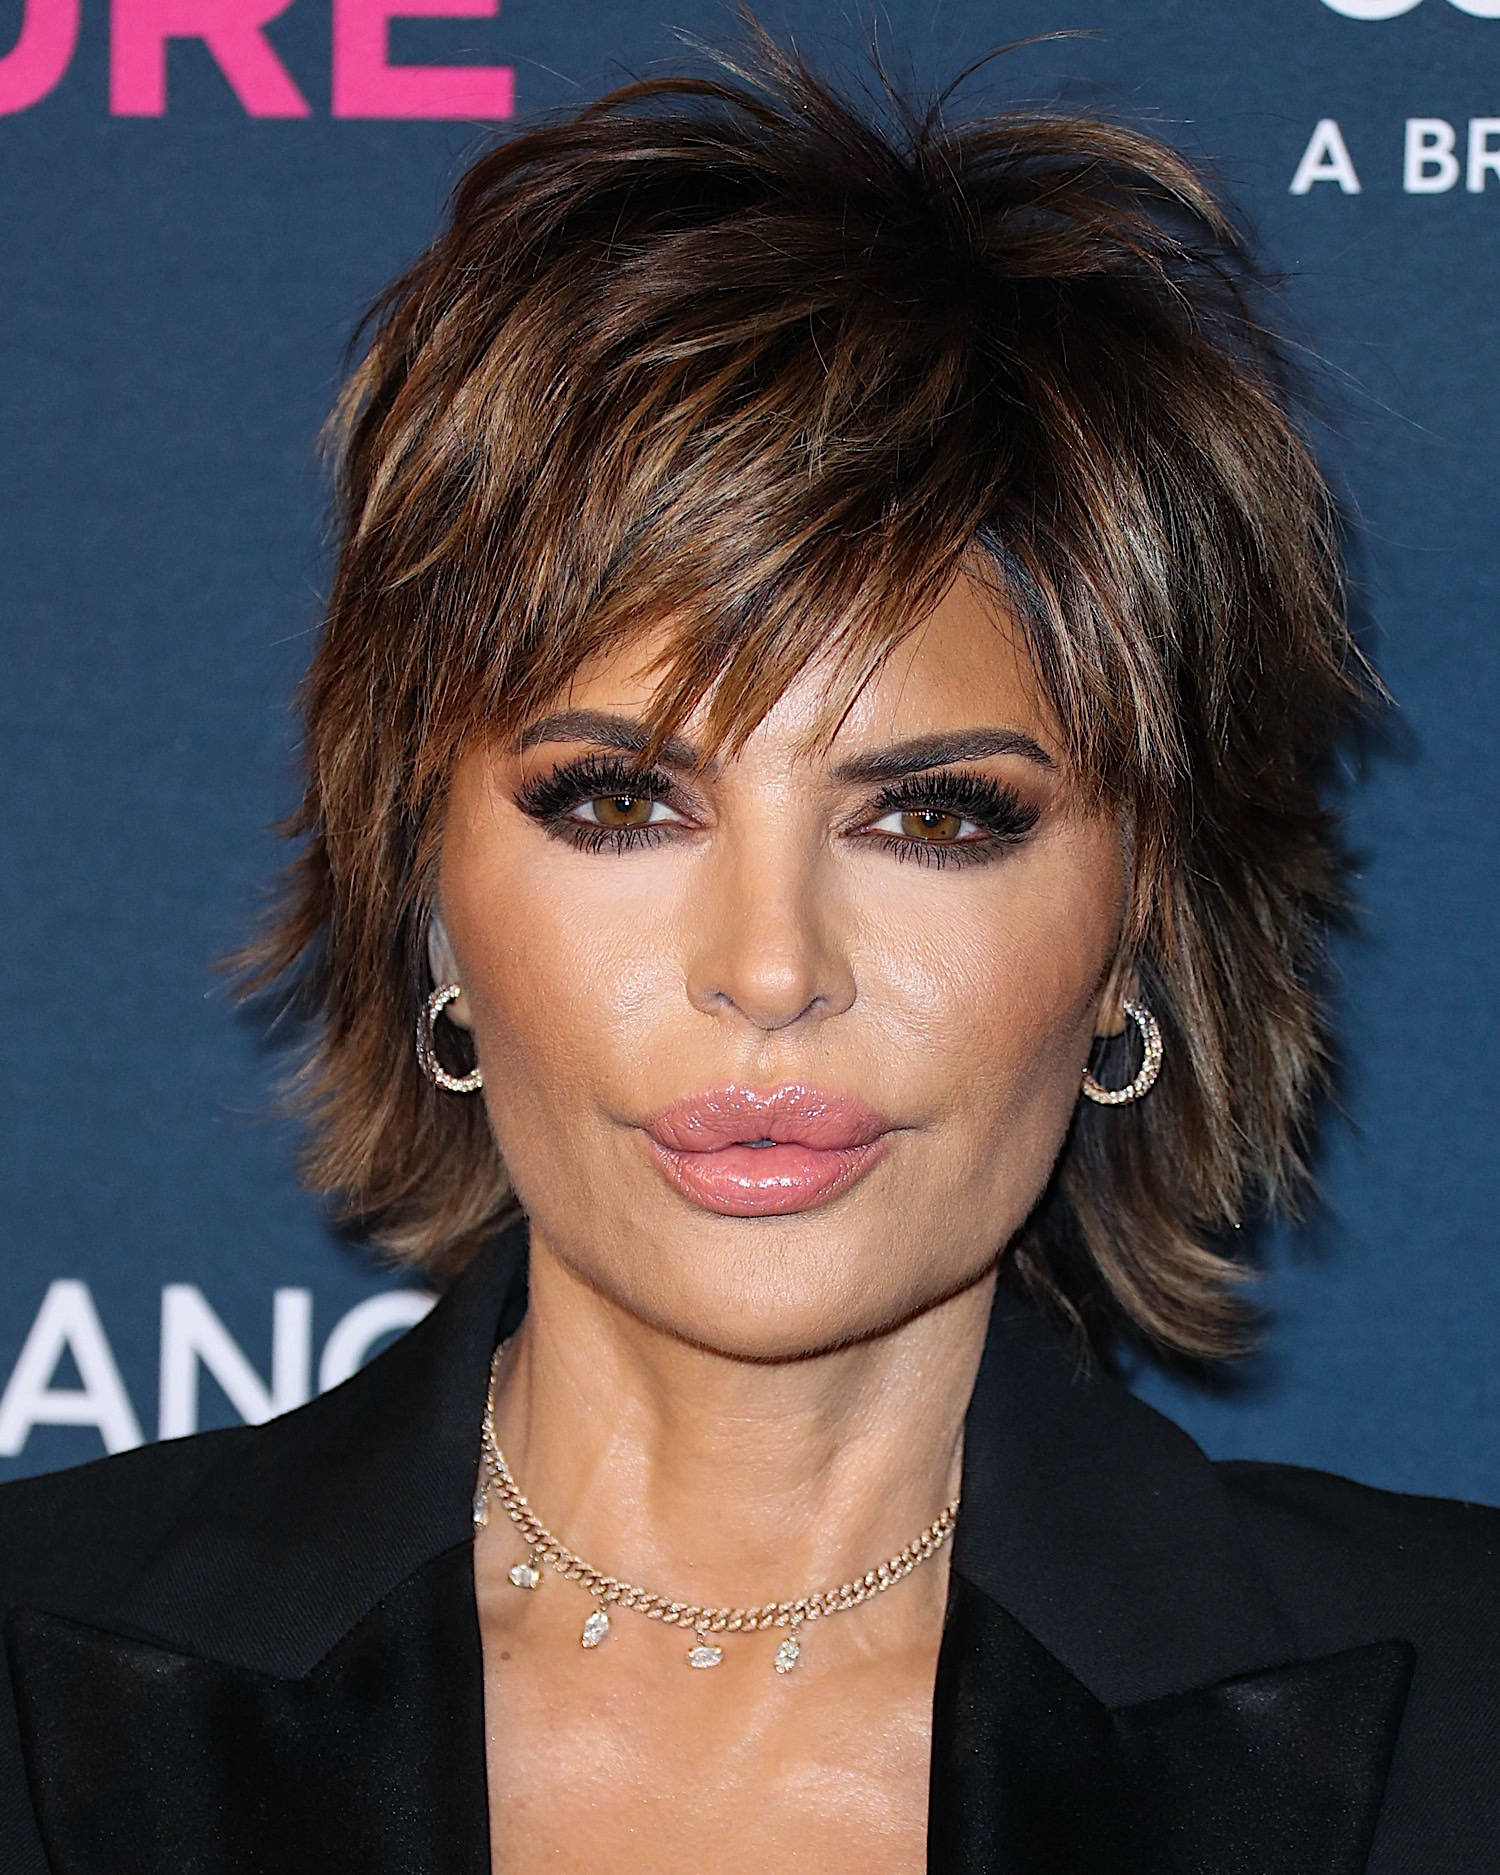 Lisa Rinna at The Women's Cancer Research Fund's An Unforgettable Evening Benefit Gala 2020